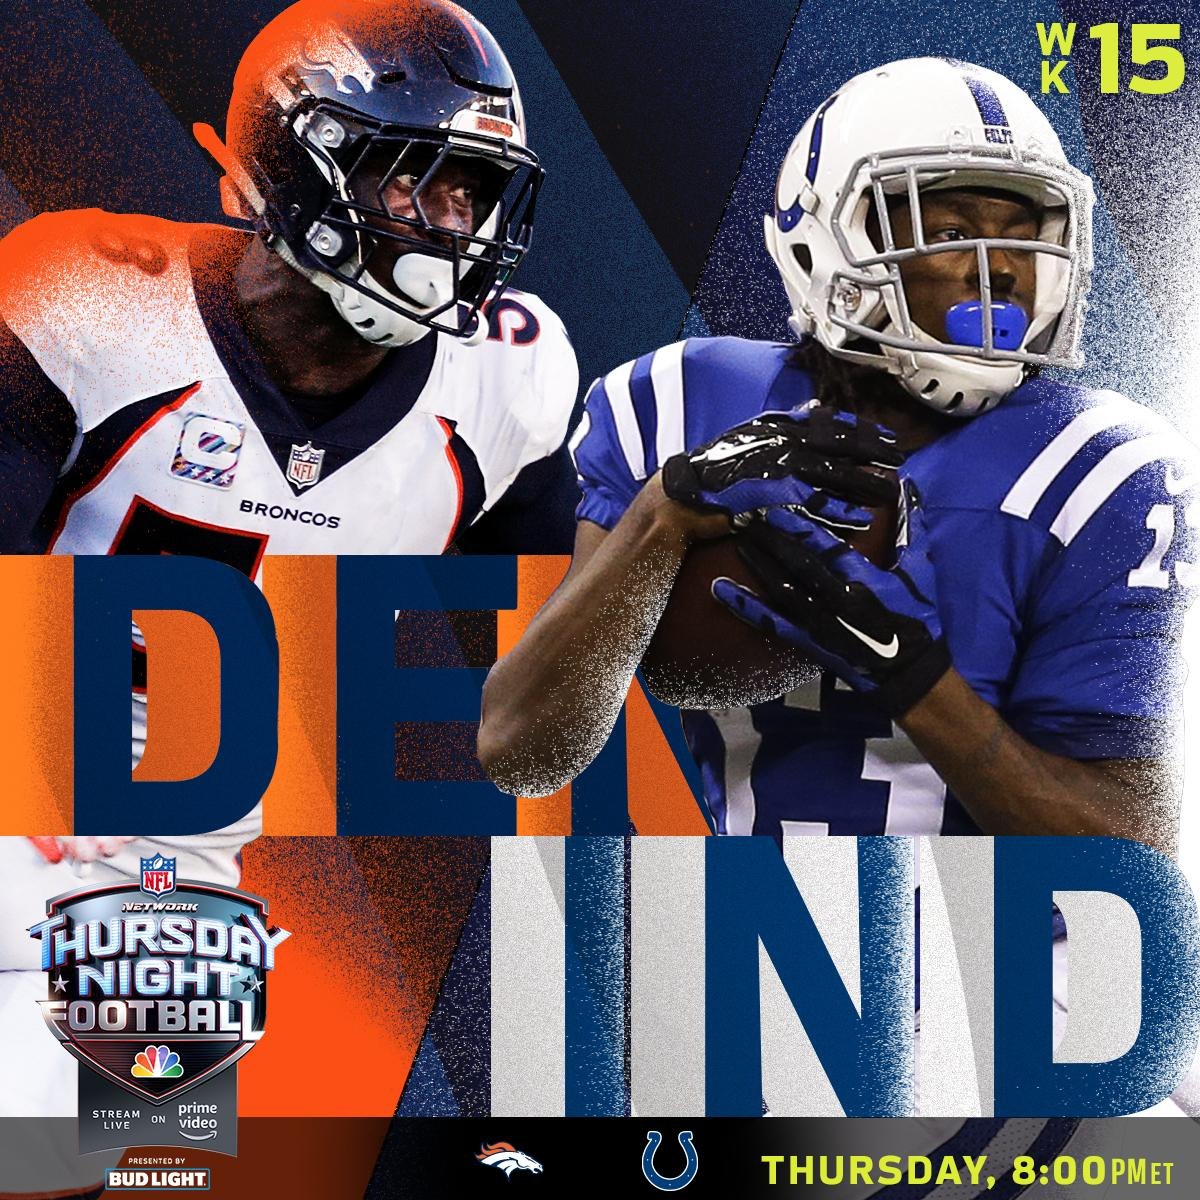 Week 15 kicks off with the @Broncos and @Colts TONIGHT on Thursday Night Football! #DENvsIND   📺: @nflnetwork   NBC   @AmazonVideo  (8pm ET)